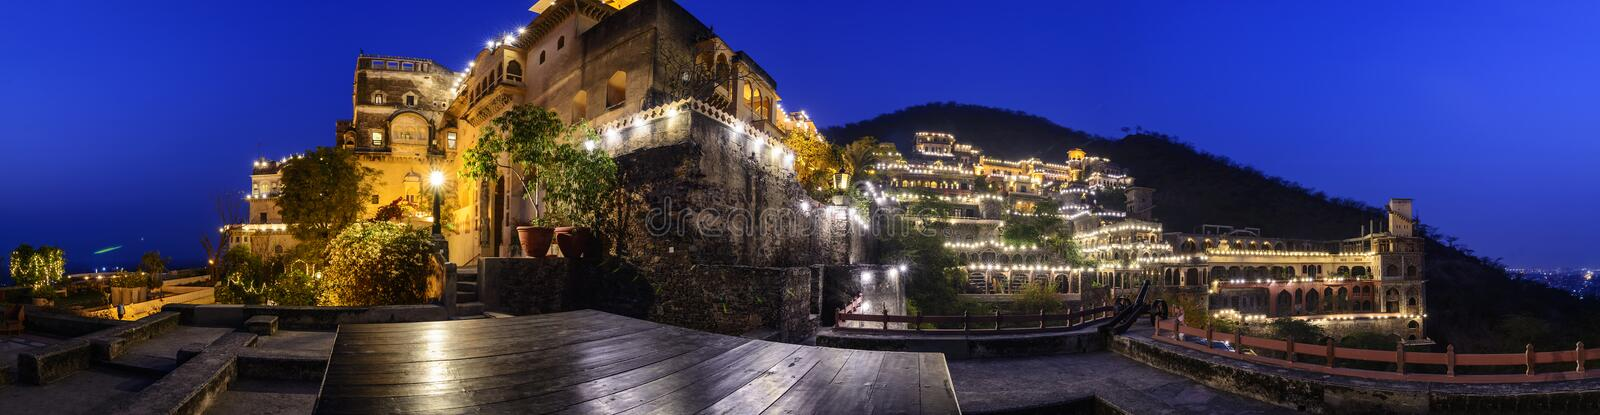 Night Panorama of Neemrana Fort Palace, Rajasthan, India. Old Indian Fort Palace converted into a heritage hotel, Neemrana Fort Palace. The Fort is located at an stock photos